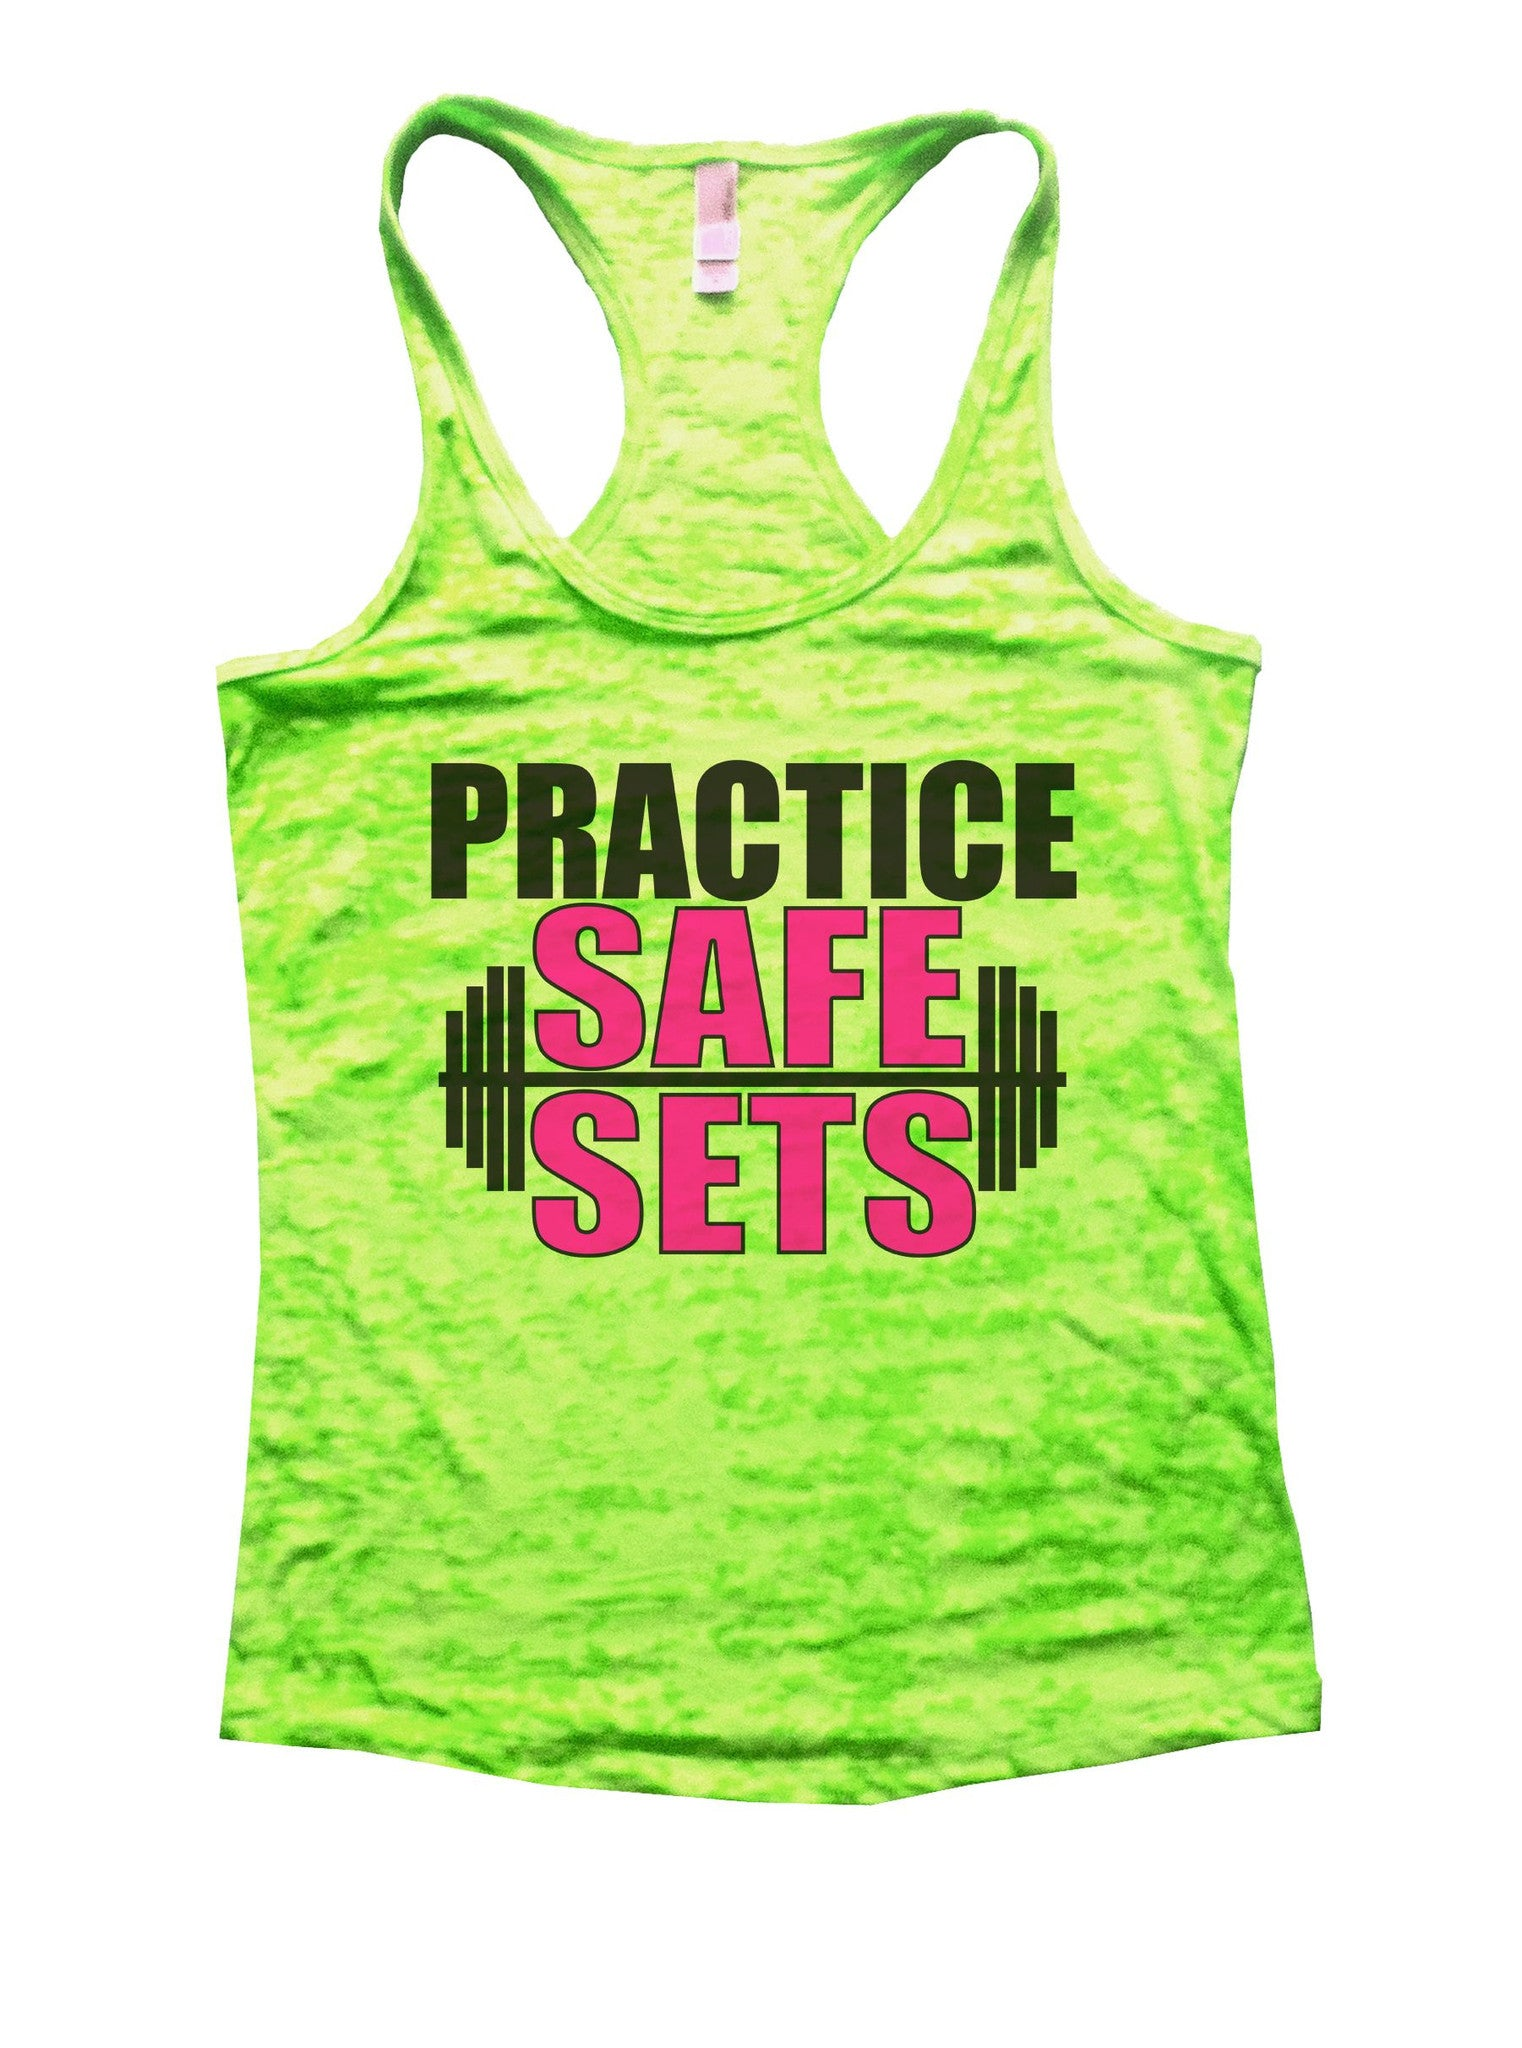 Practice Safe Sets Burnout Tank Top By BurnoutTankTops.com - 1124 - Funny Shirts Tank Tops Burnouts and Triblends  - 2